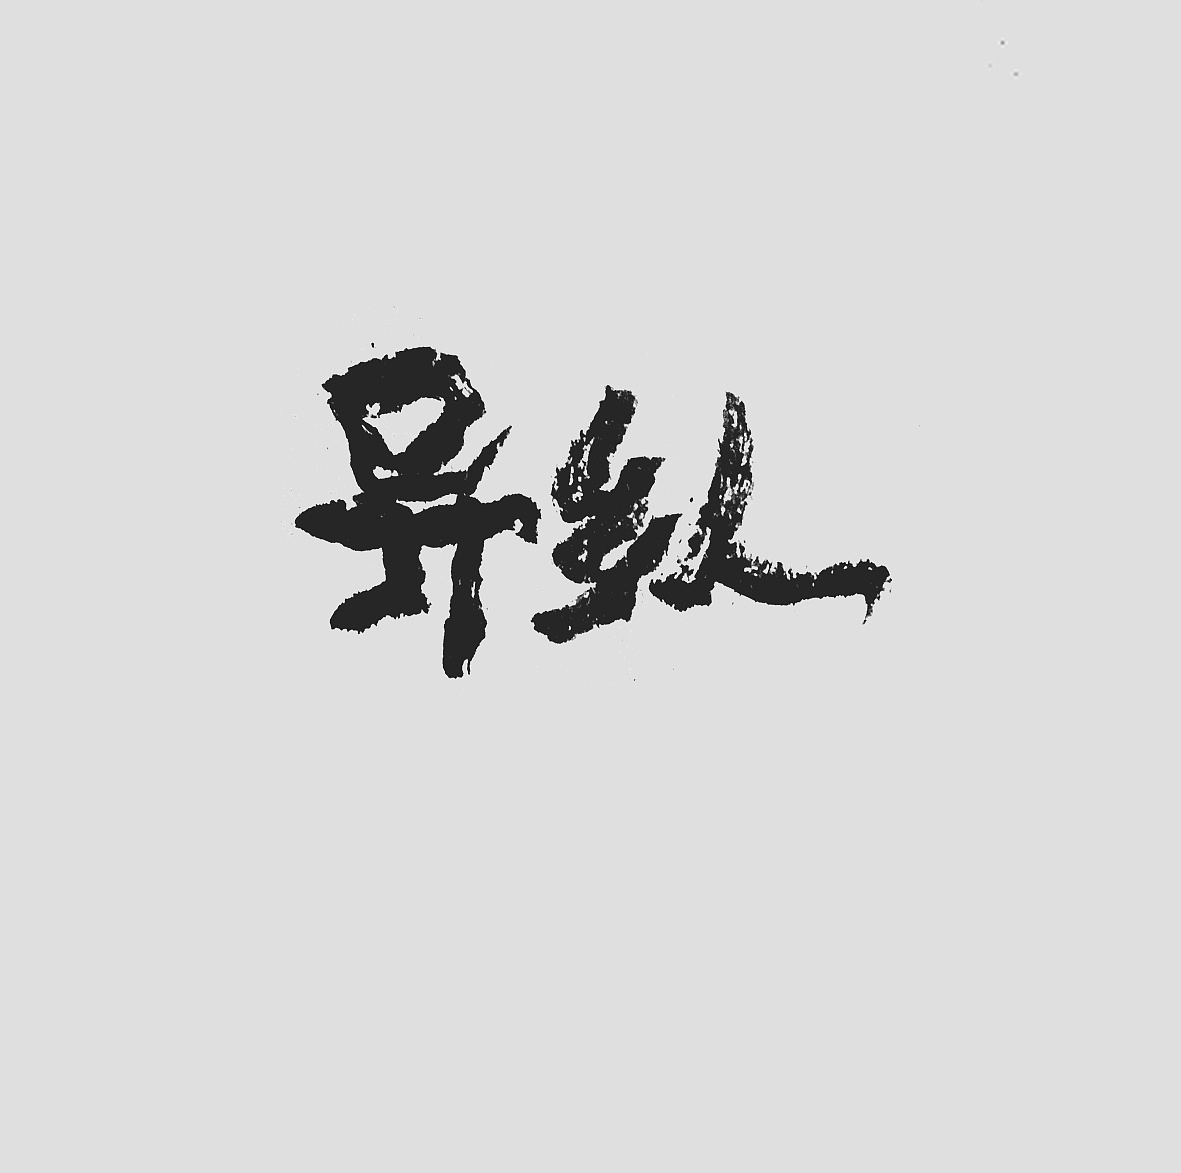 chinesefontdesign.com 2017 08 02 14 03 01 745180 21P The most cool and heroic Chinese brush calligraphy